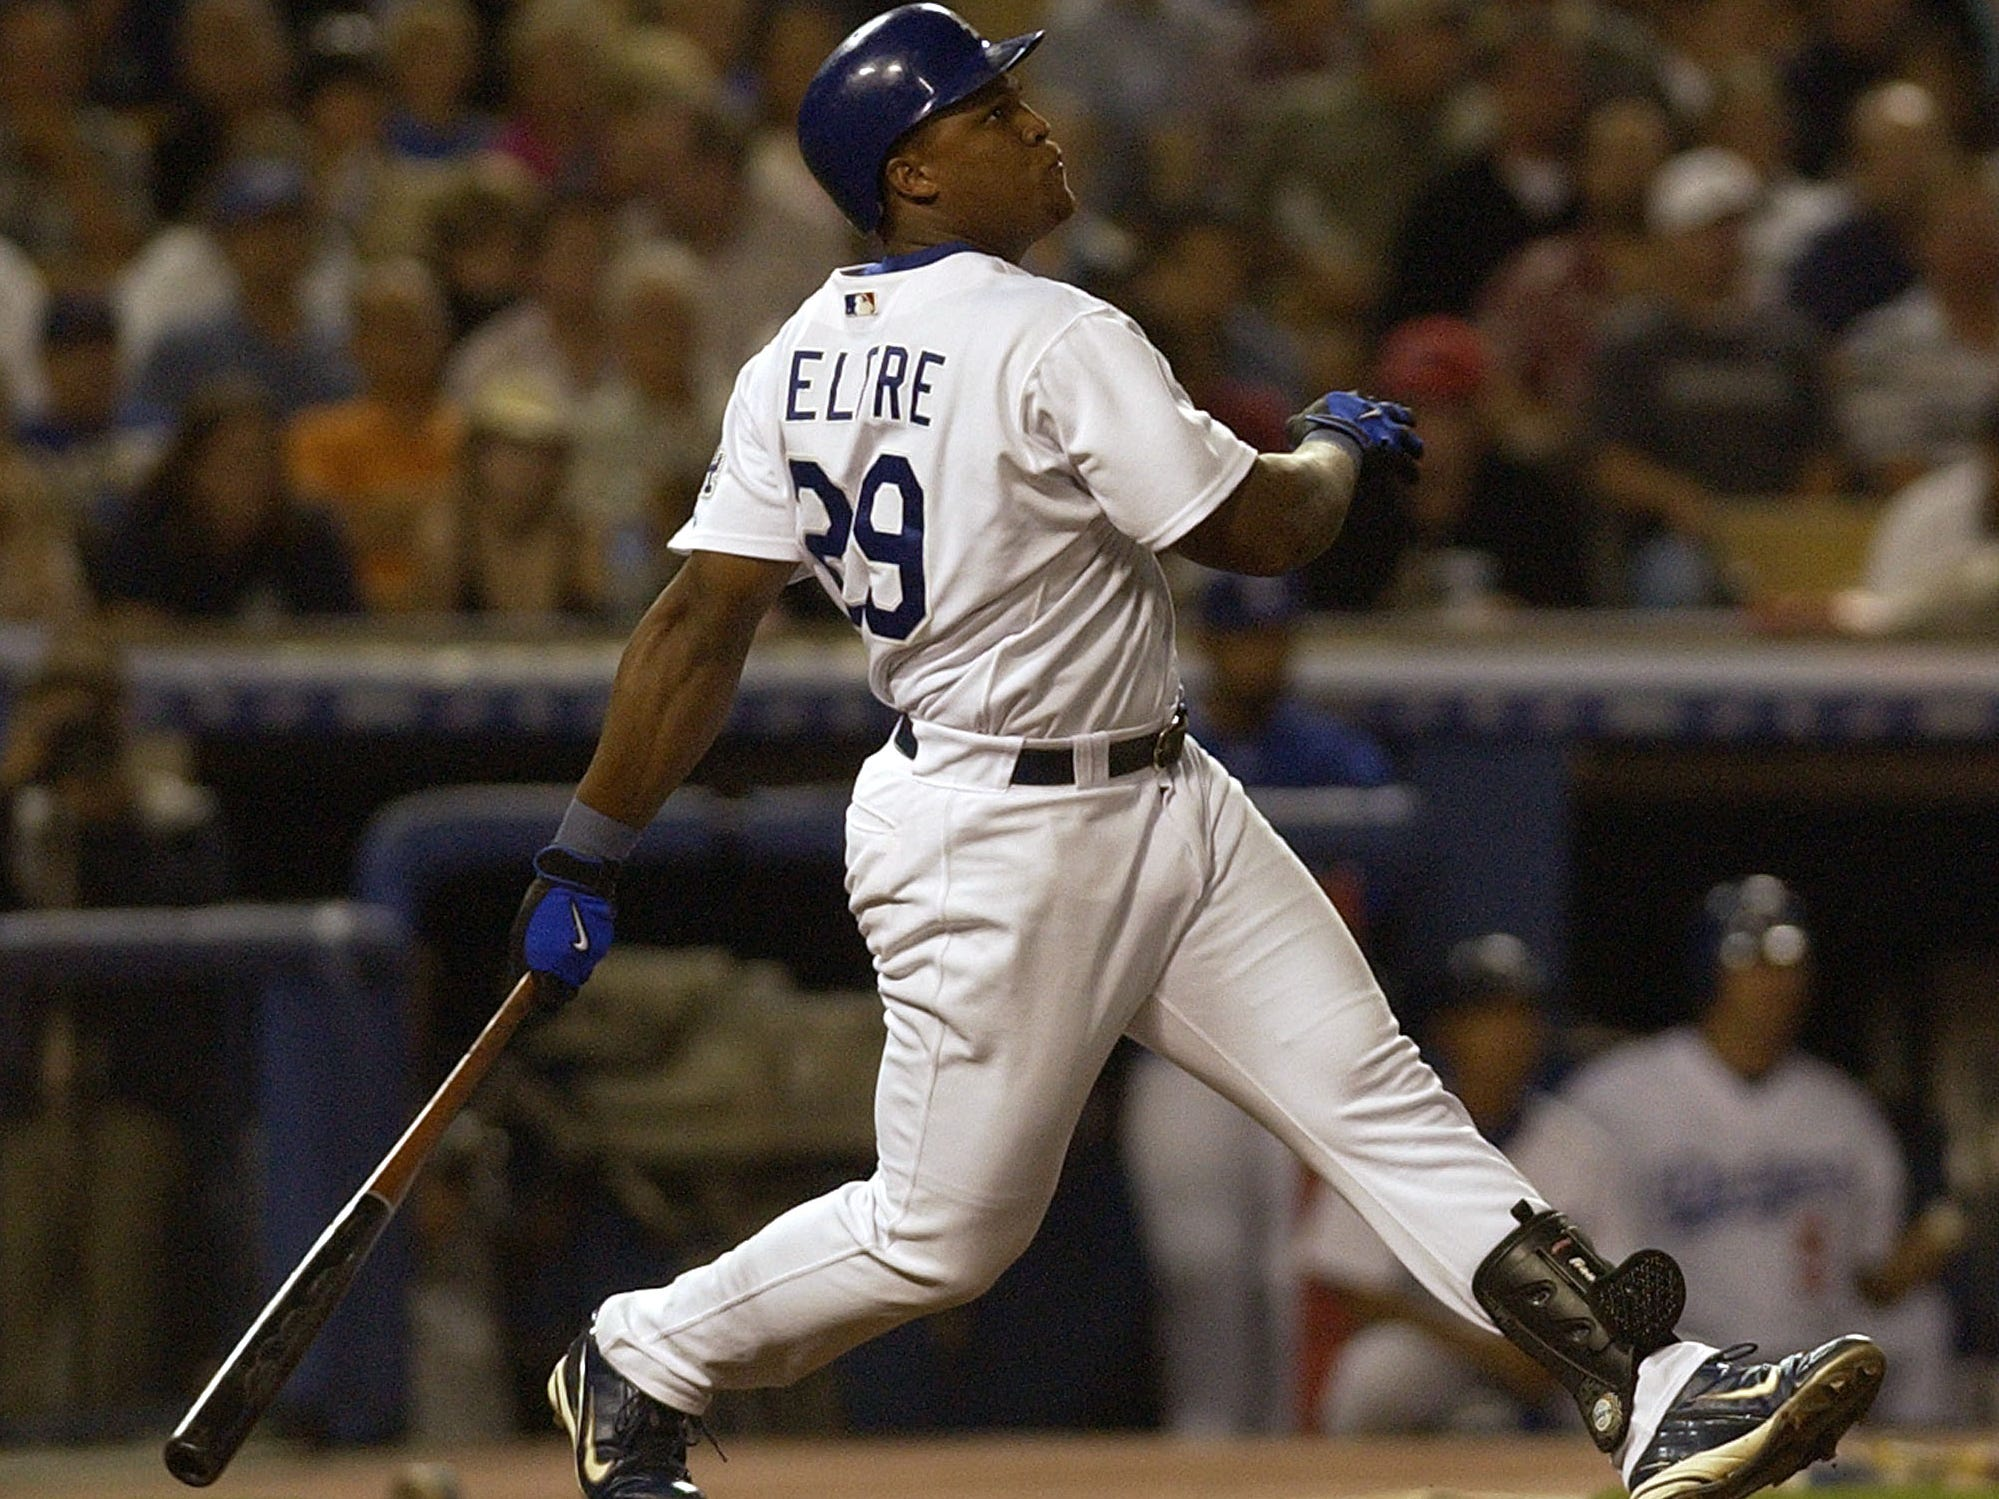 Beltre's 2004 season resulted in the highest MVP finish of his career, finishing as the runner-up to Barry Bonds. The then-25-year-old recorded a .334/.388/.629 slash line with 48 home runs and 121 RBI.